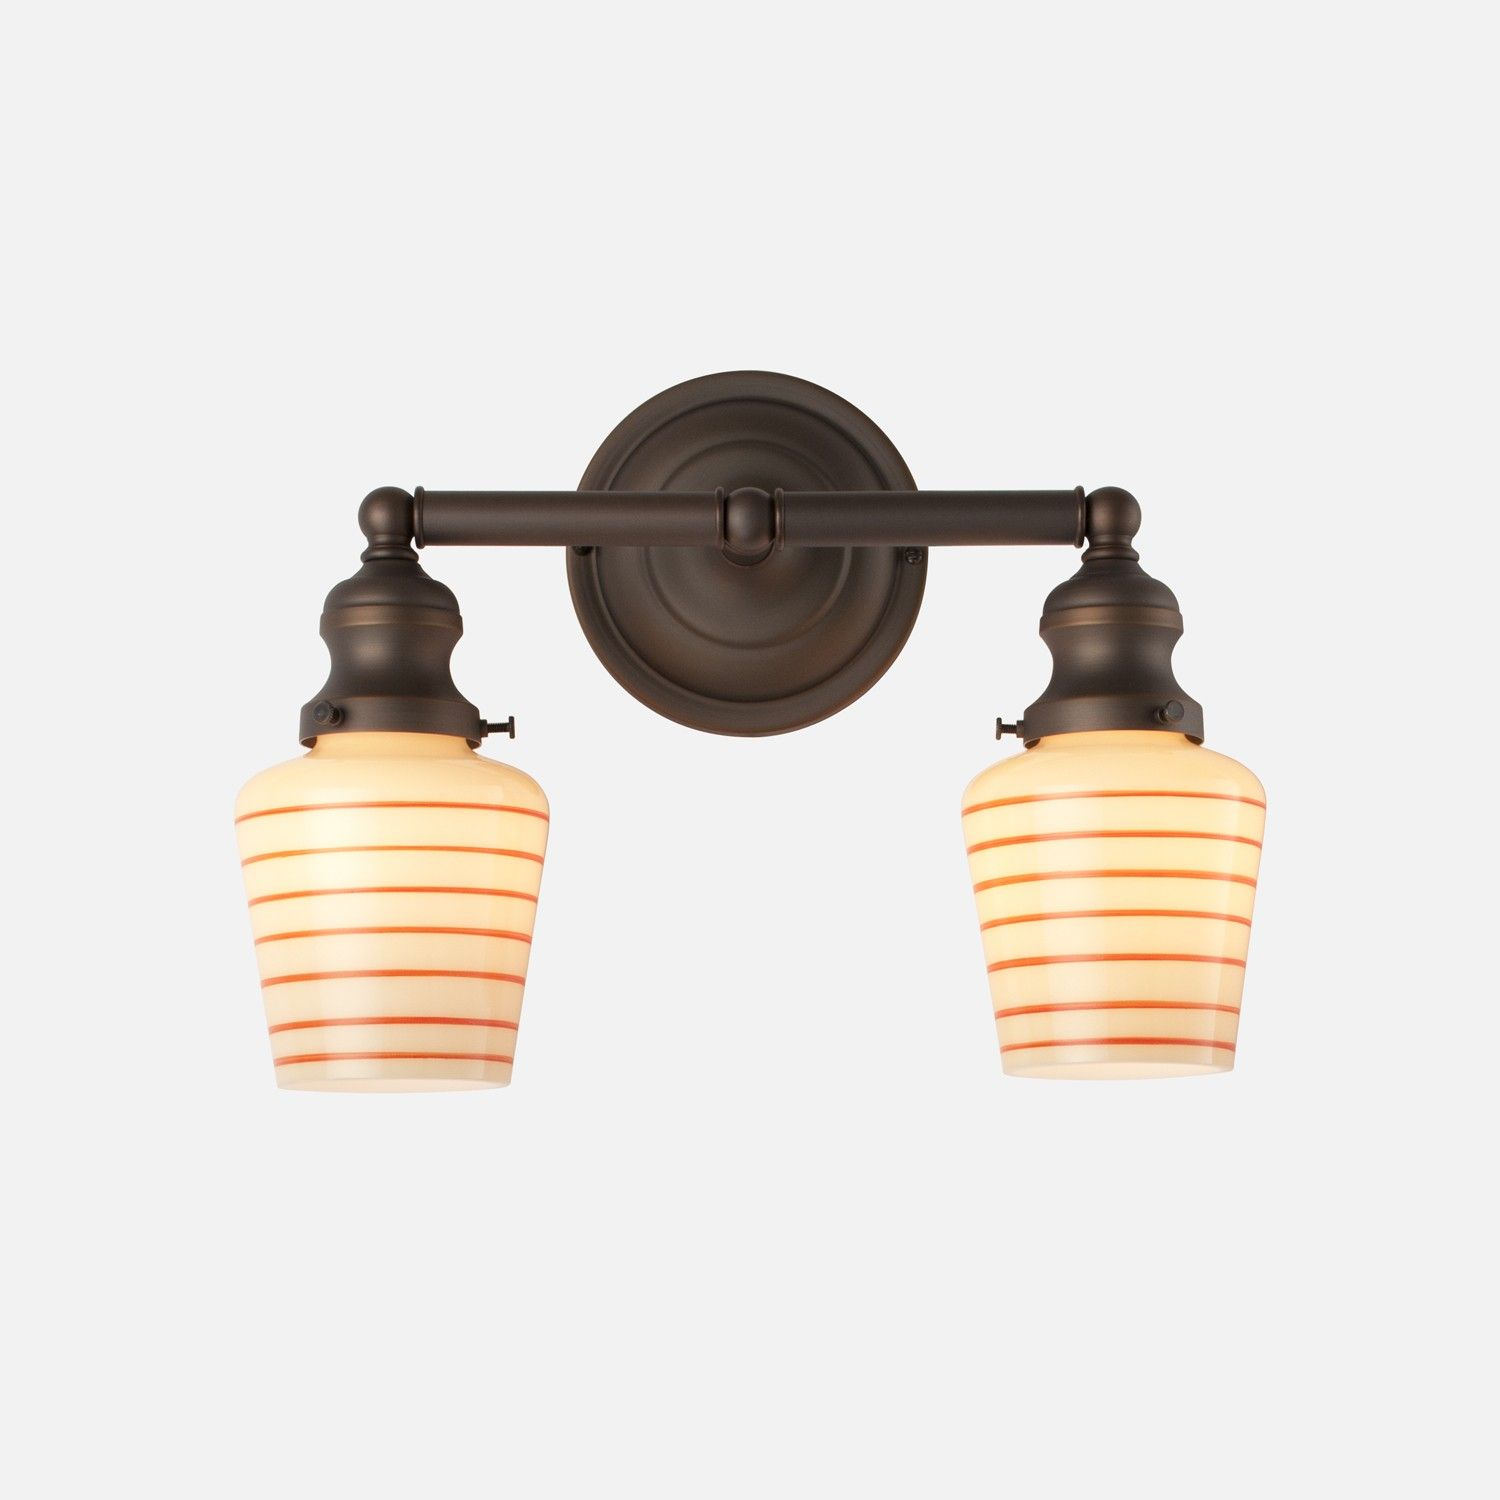 Lighting | Schoolhouse electric, Wall sconces and Lights